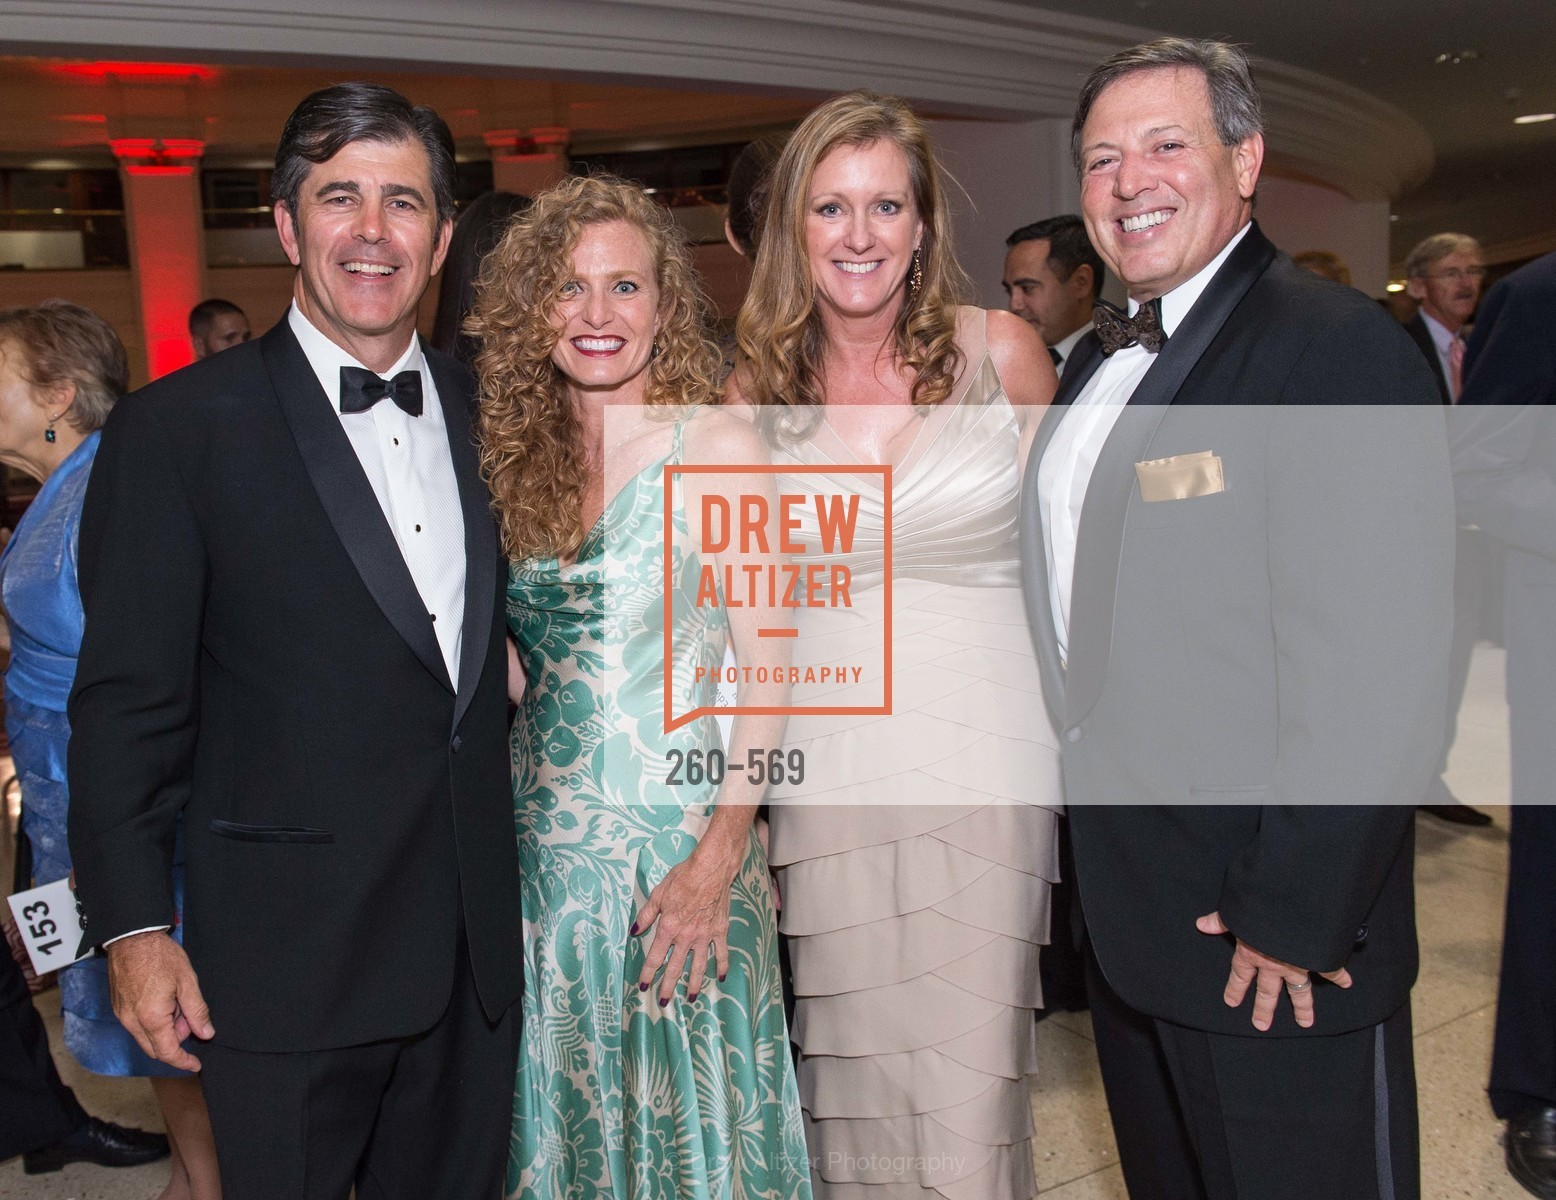 John Protopappas, Laurie Edwards, Melissa Russo, John Russo, CHABOT Science Center STARLIGHT GALA, US, September 20th, 2014,Drew Altizer, Drew Altizer Photography, full-service agency, private events, San Francisco photographer, photographer california